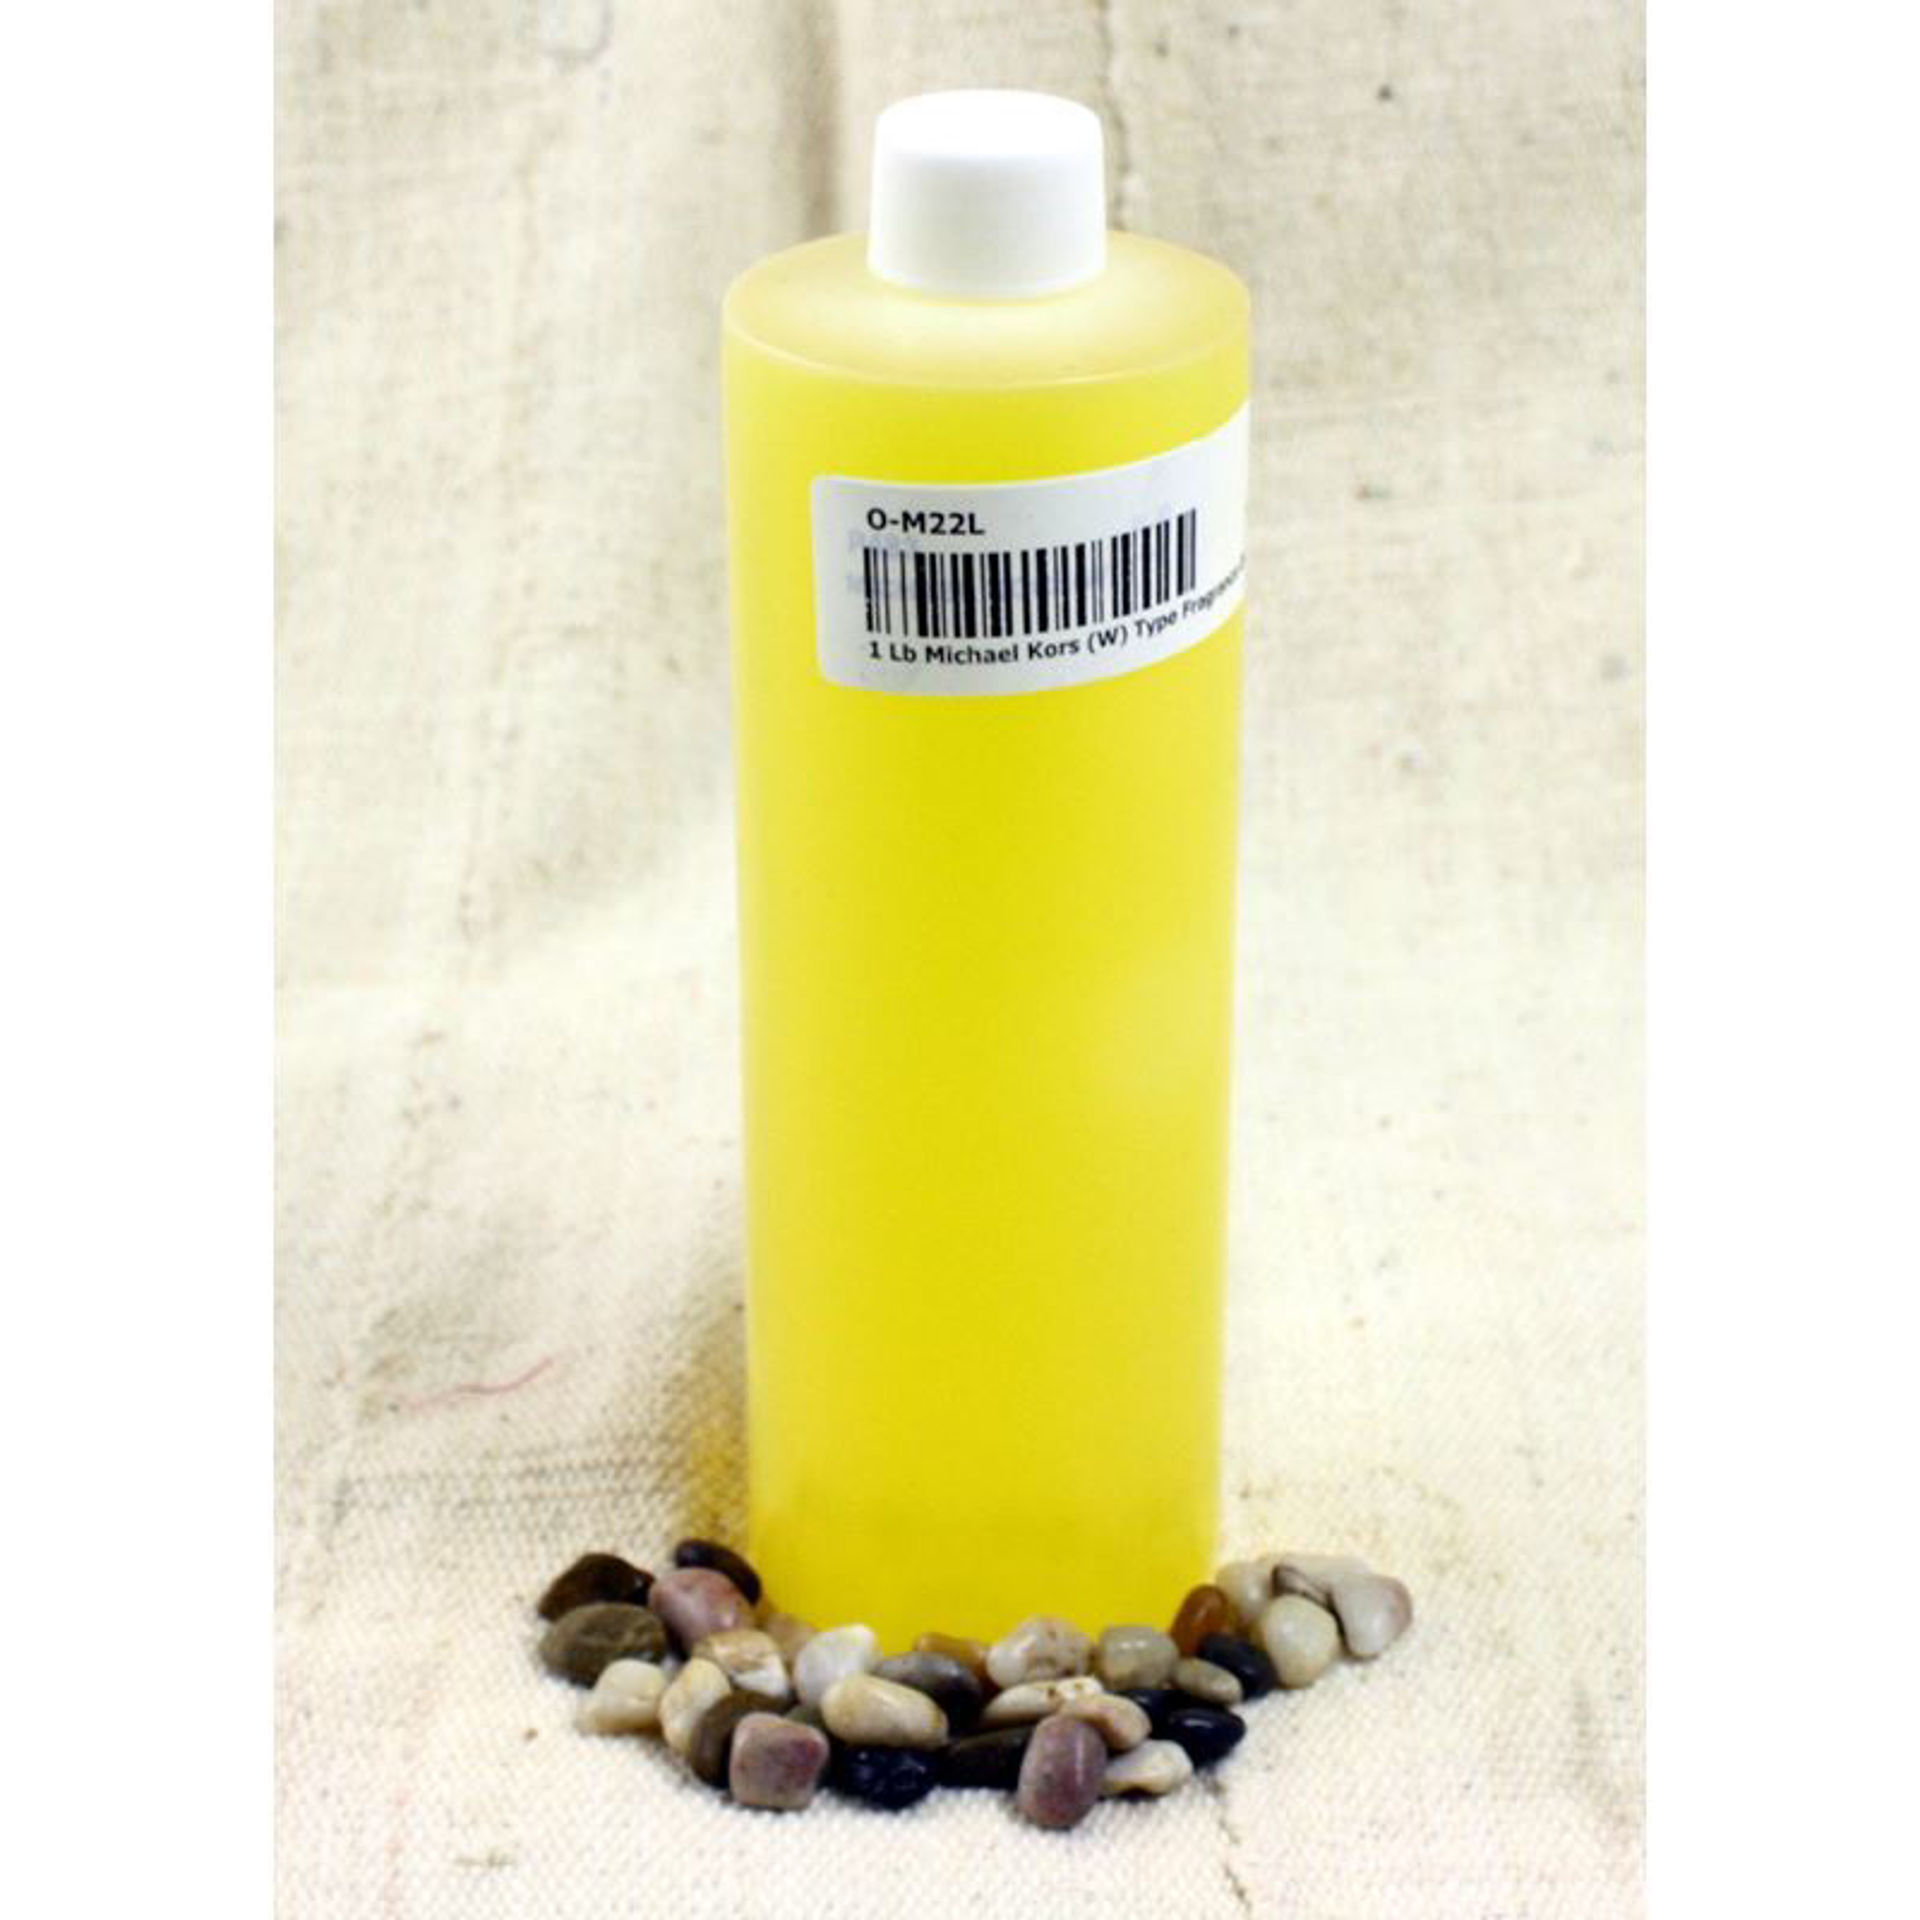 Picture of 1 Lb Michael Kors (W) Type Fragrance Oil